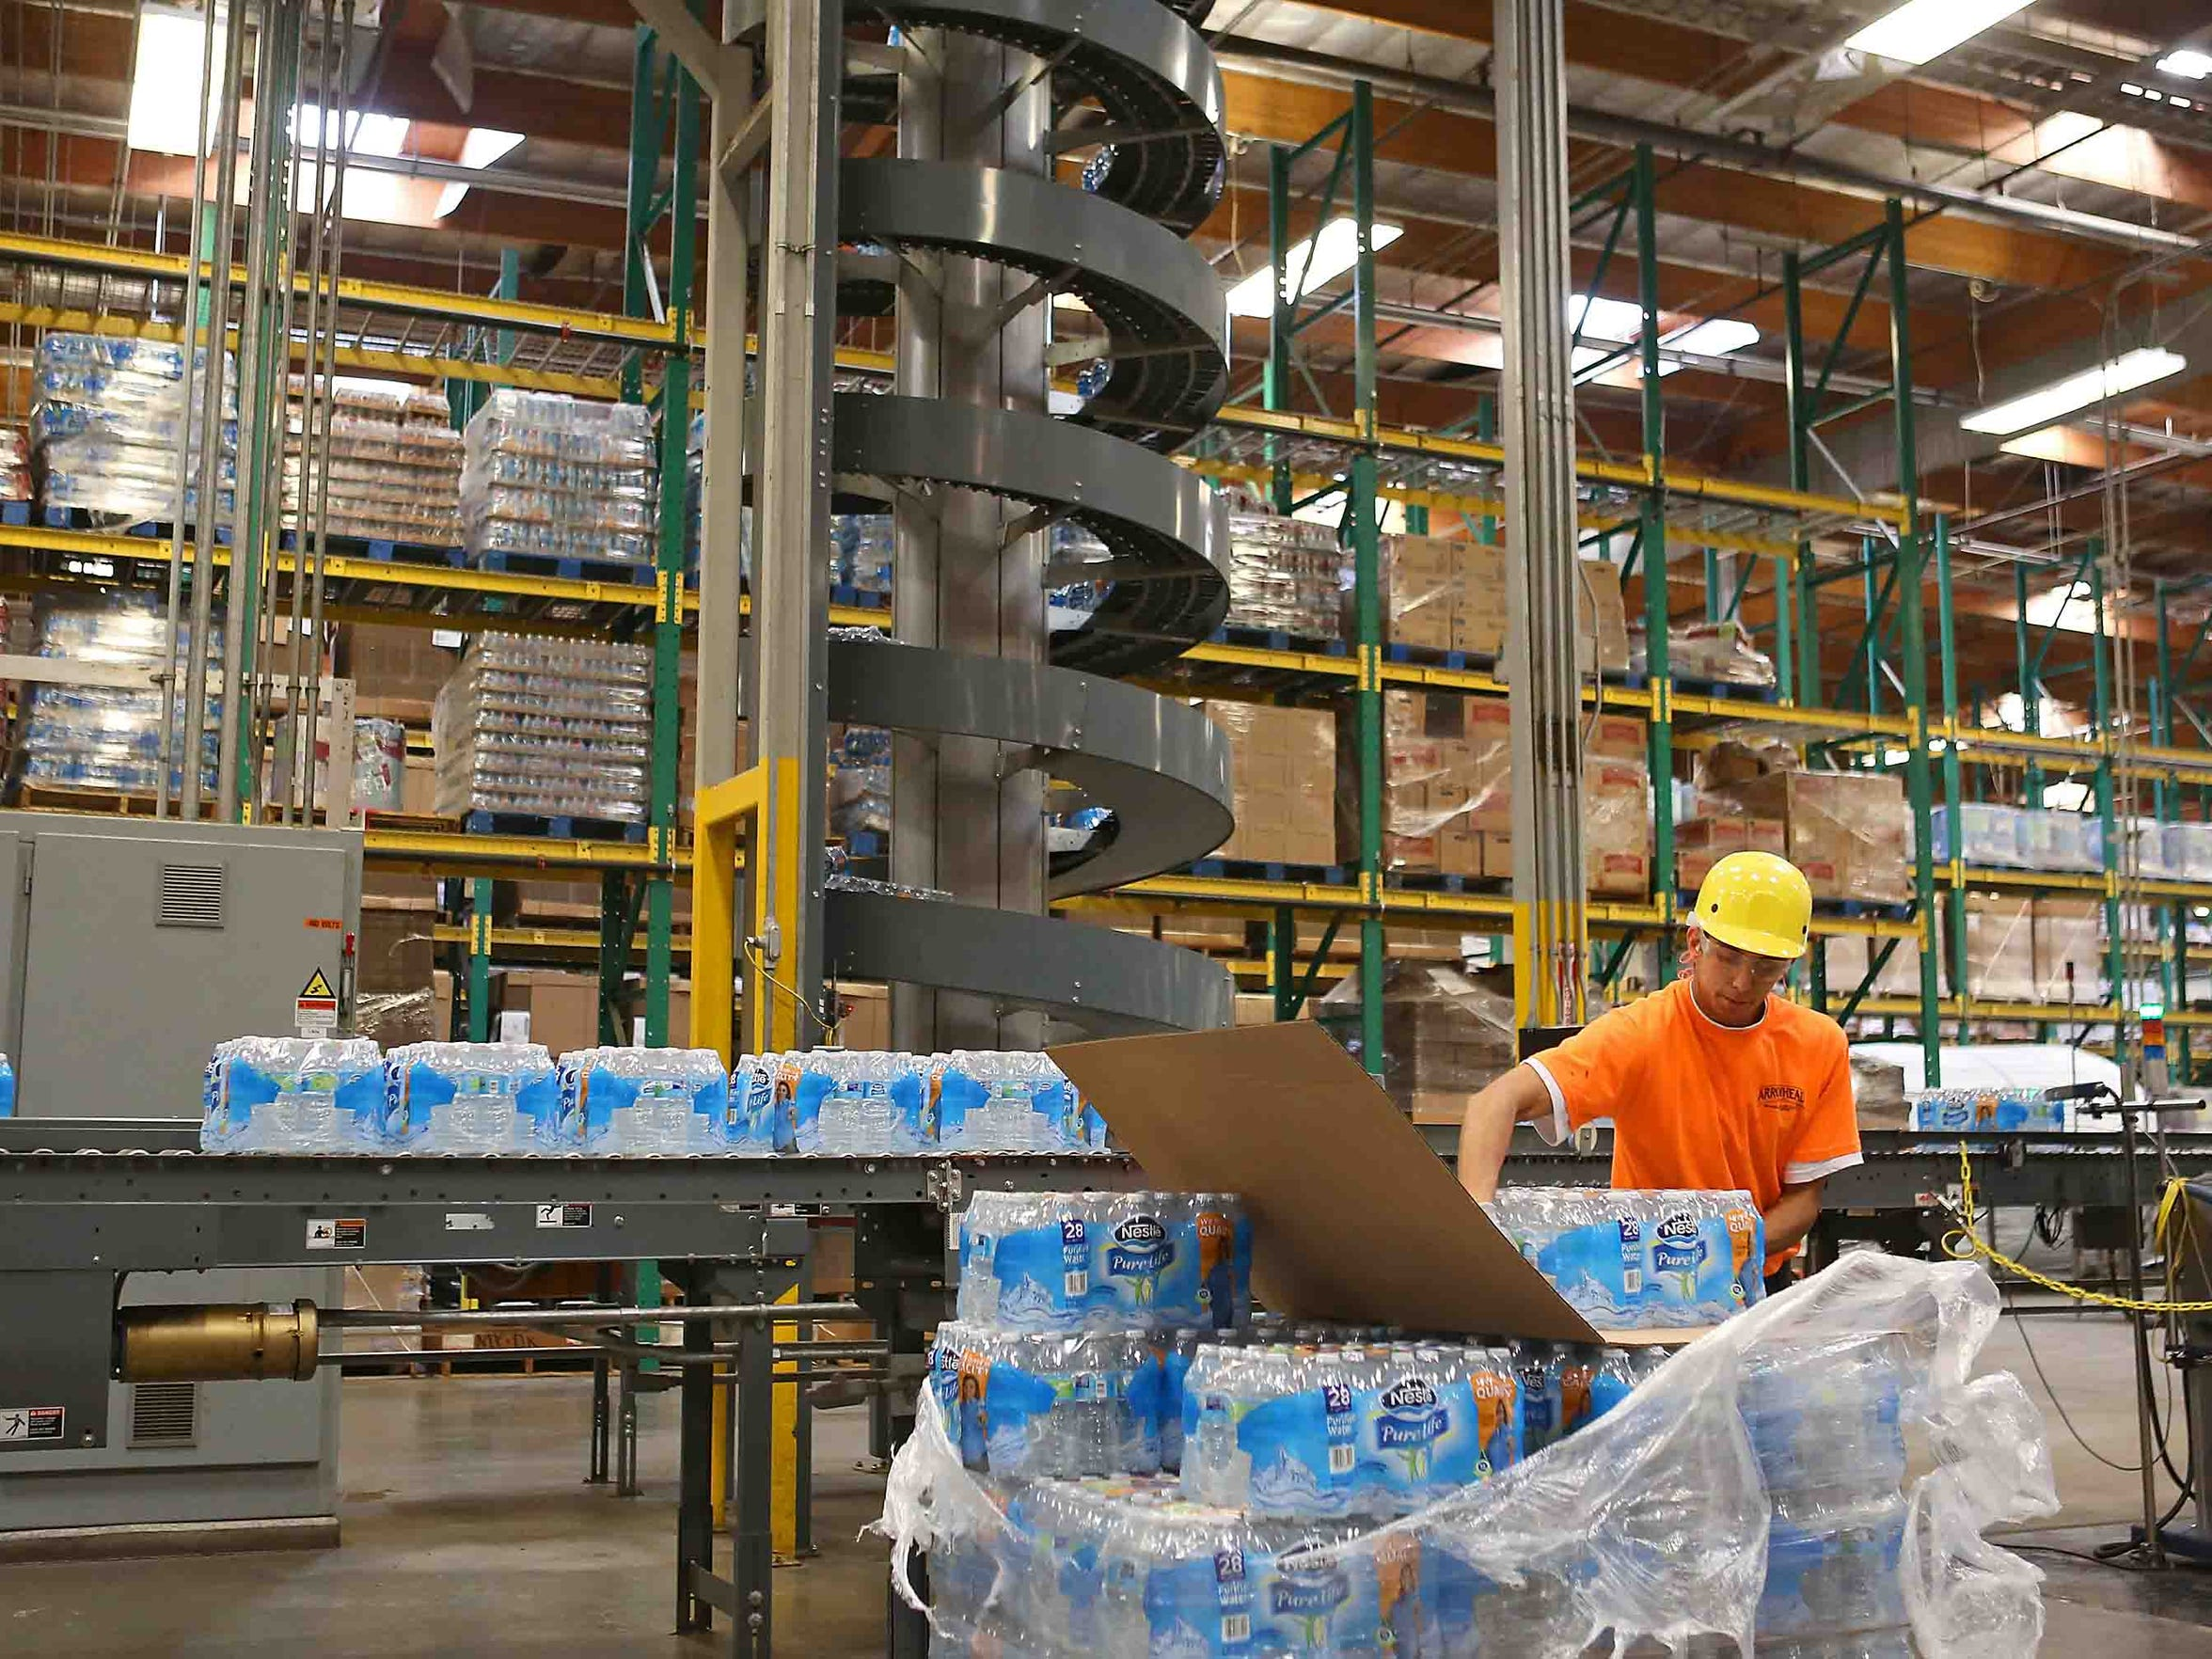 A worker packages bottled water at the Nestle bottling plant in Ontario.